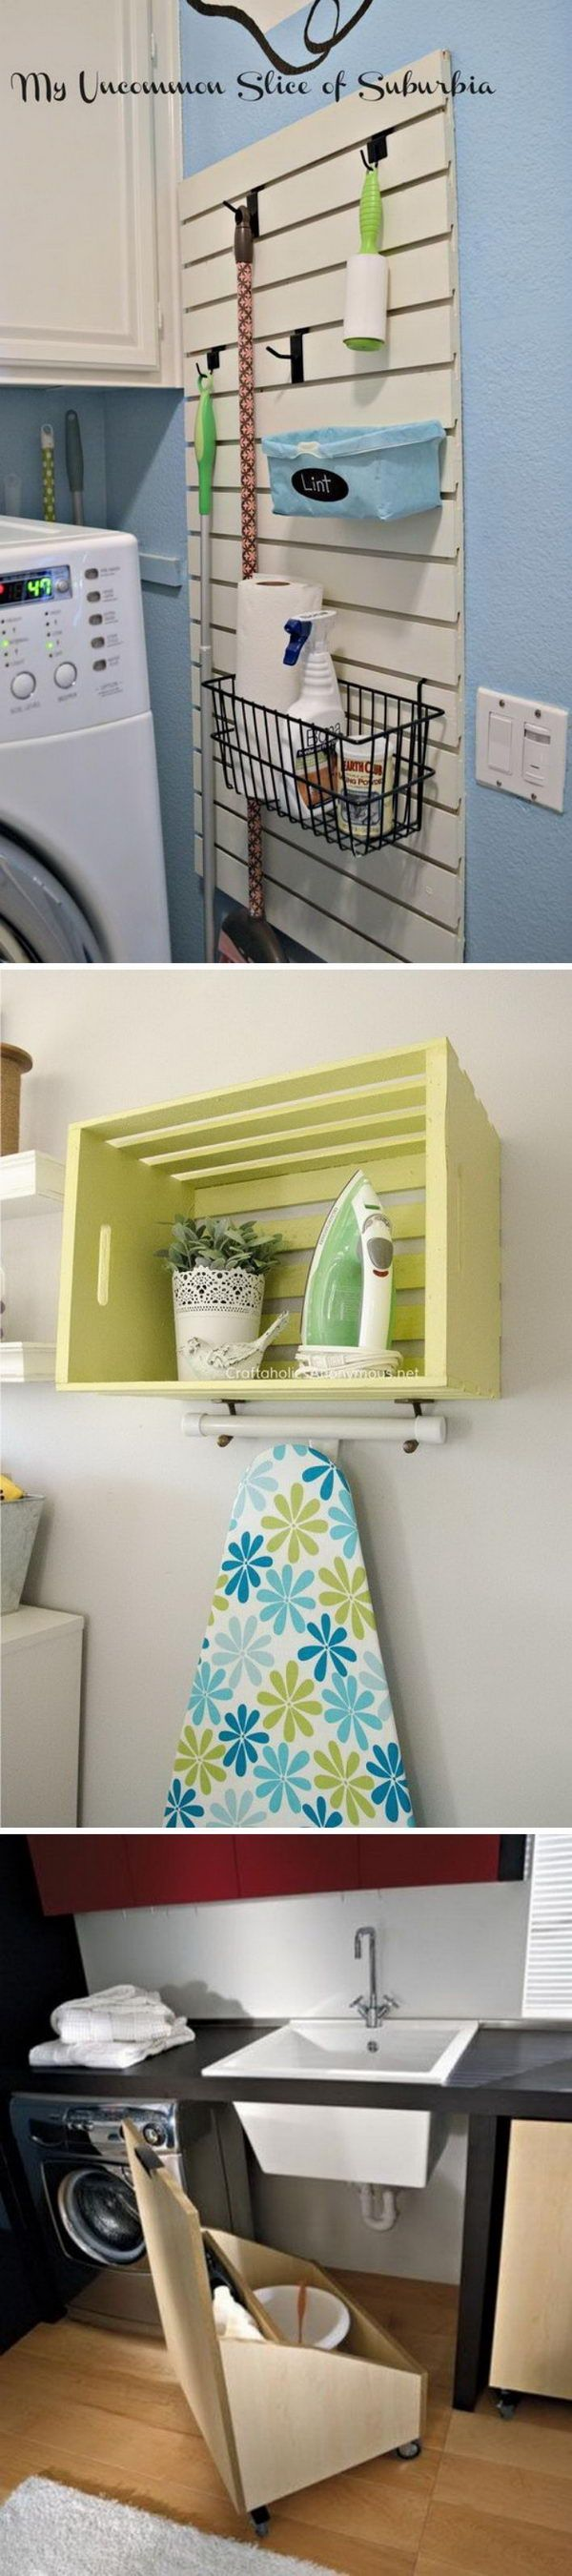 Clever Laundry Room Organization and Storage Ideas. | Diy ...